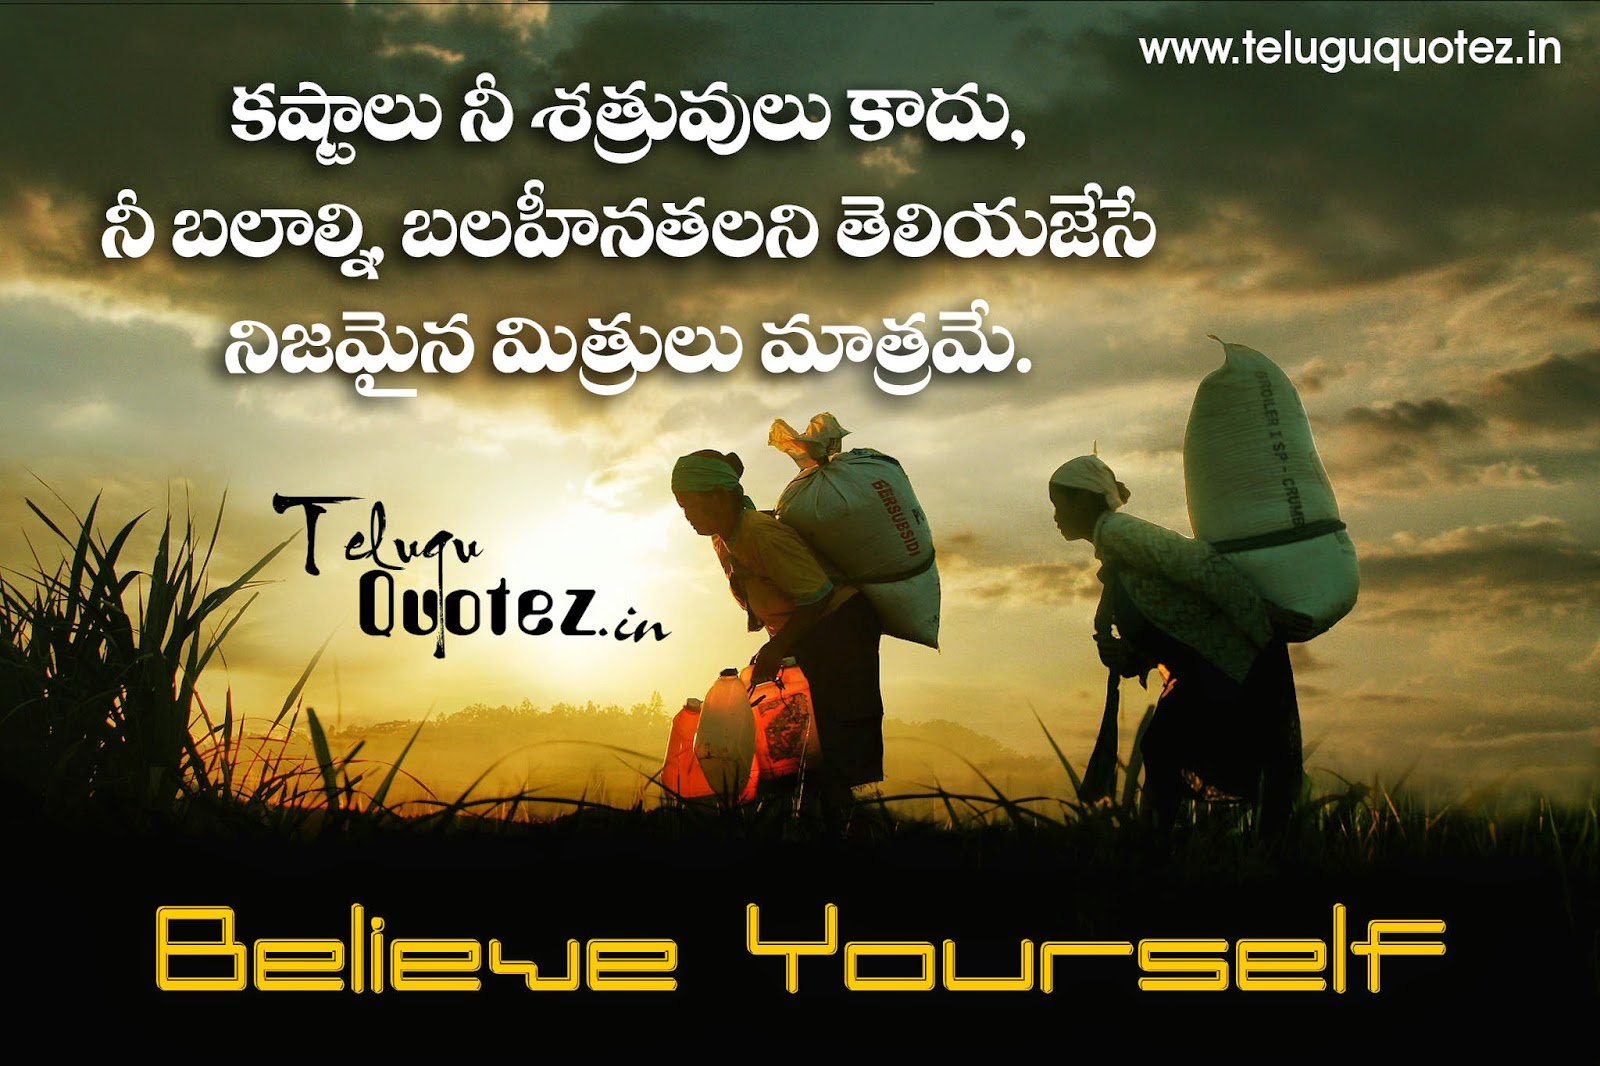 motivational picture telugu quotes on life naveengfx